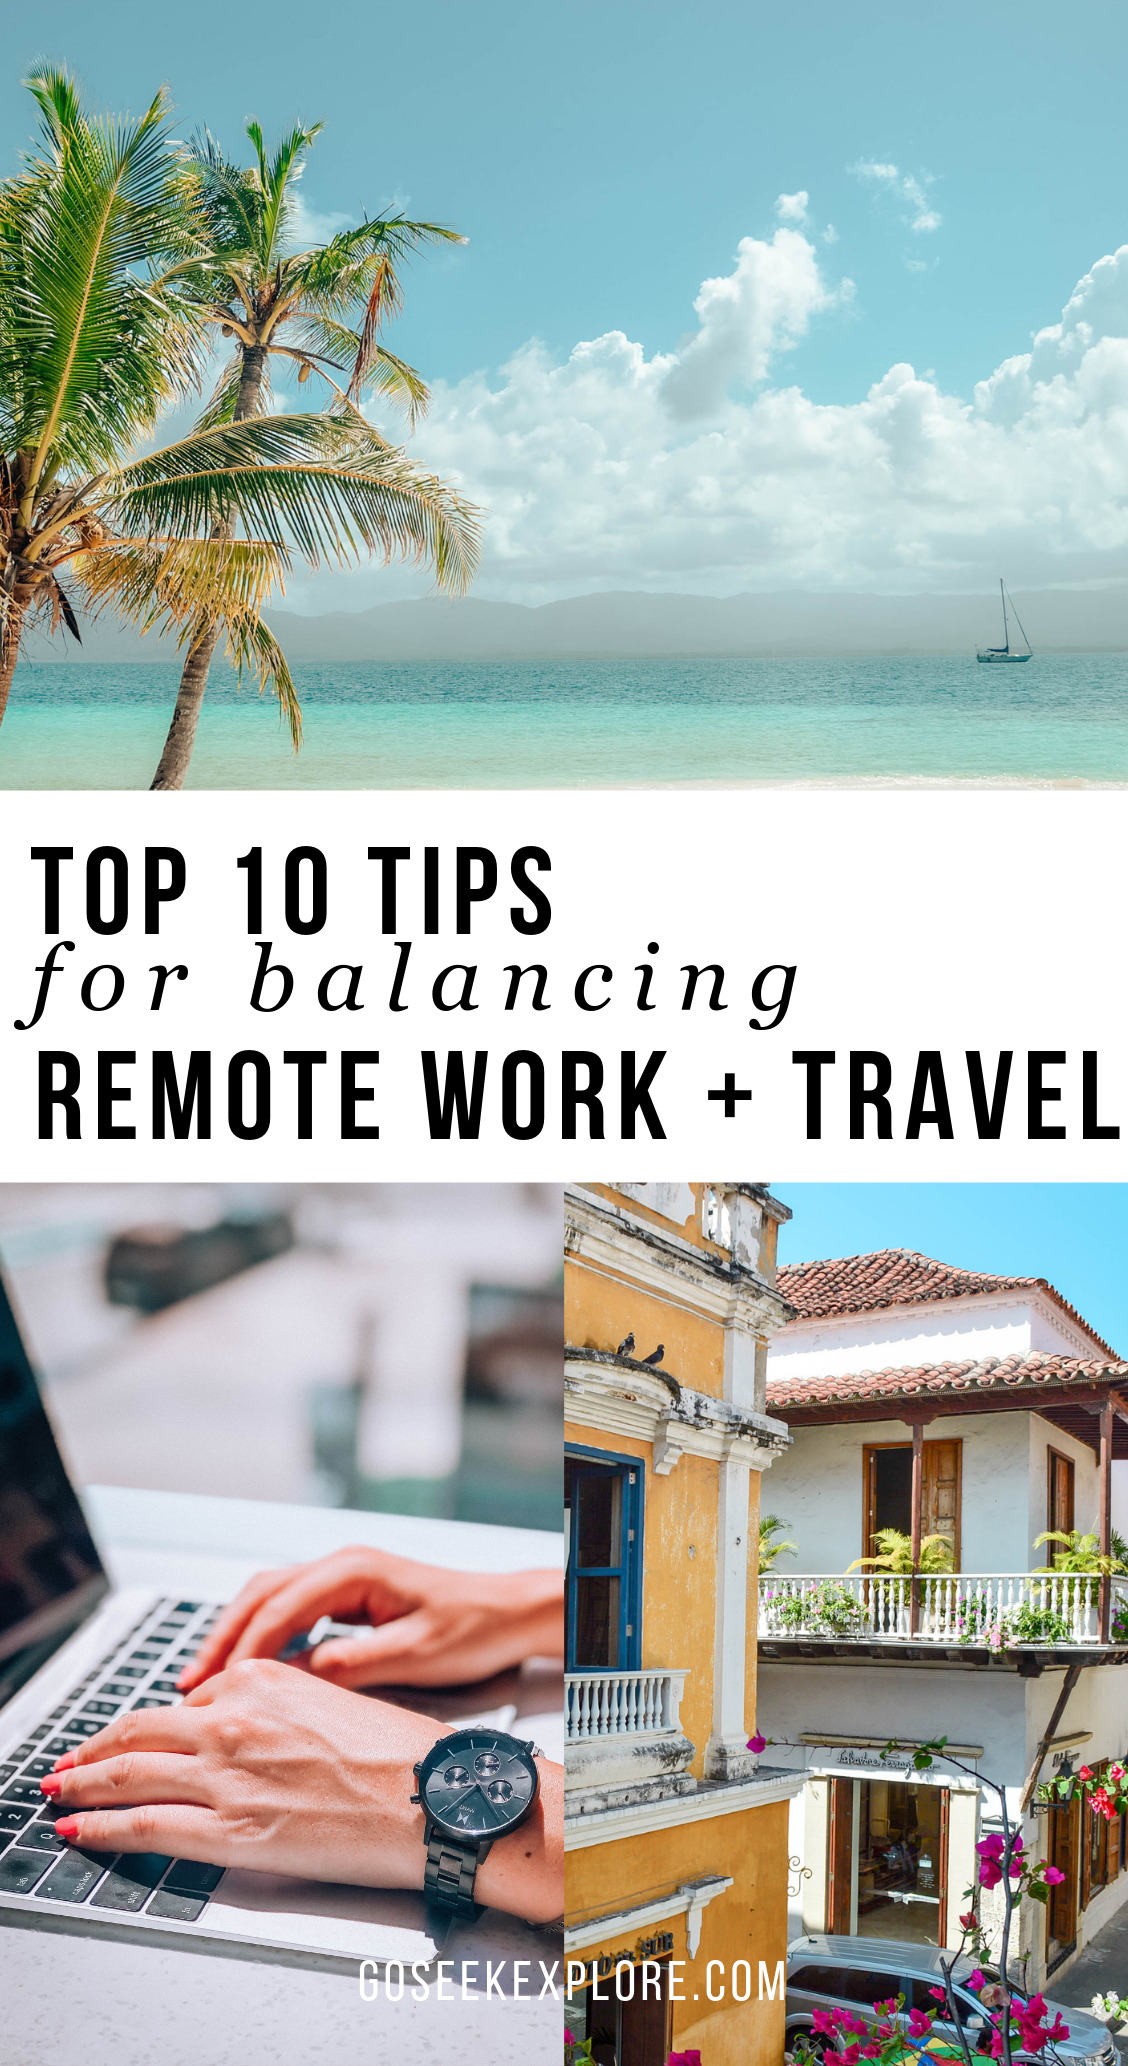 Top 10 tips for balancing remote work and travel! Best tips and ideas to make working online easier for anyone living a digital nomad lifestyle. goseekexplore.com #digitalnomad #laptoplifestyle #workabroad #remotework #traveltips